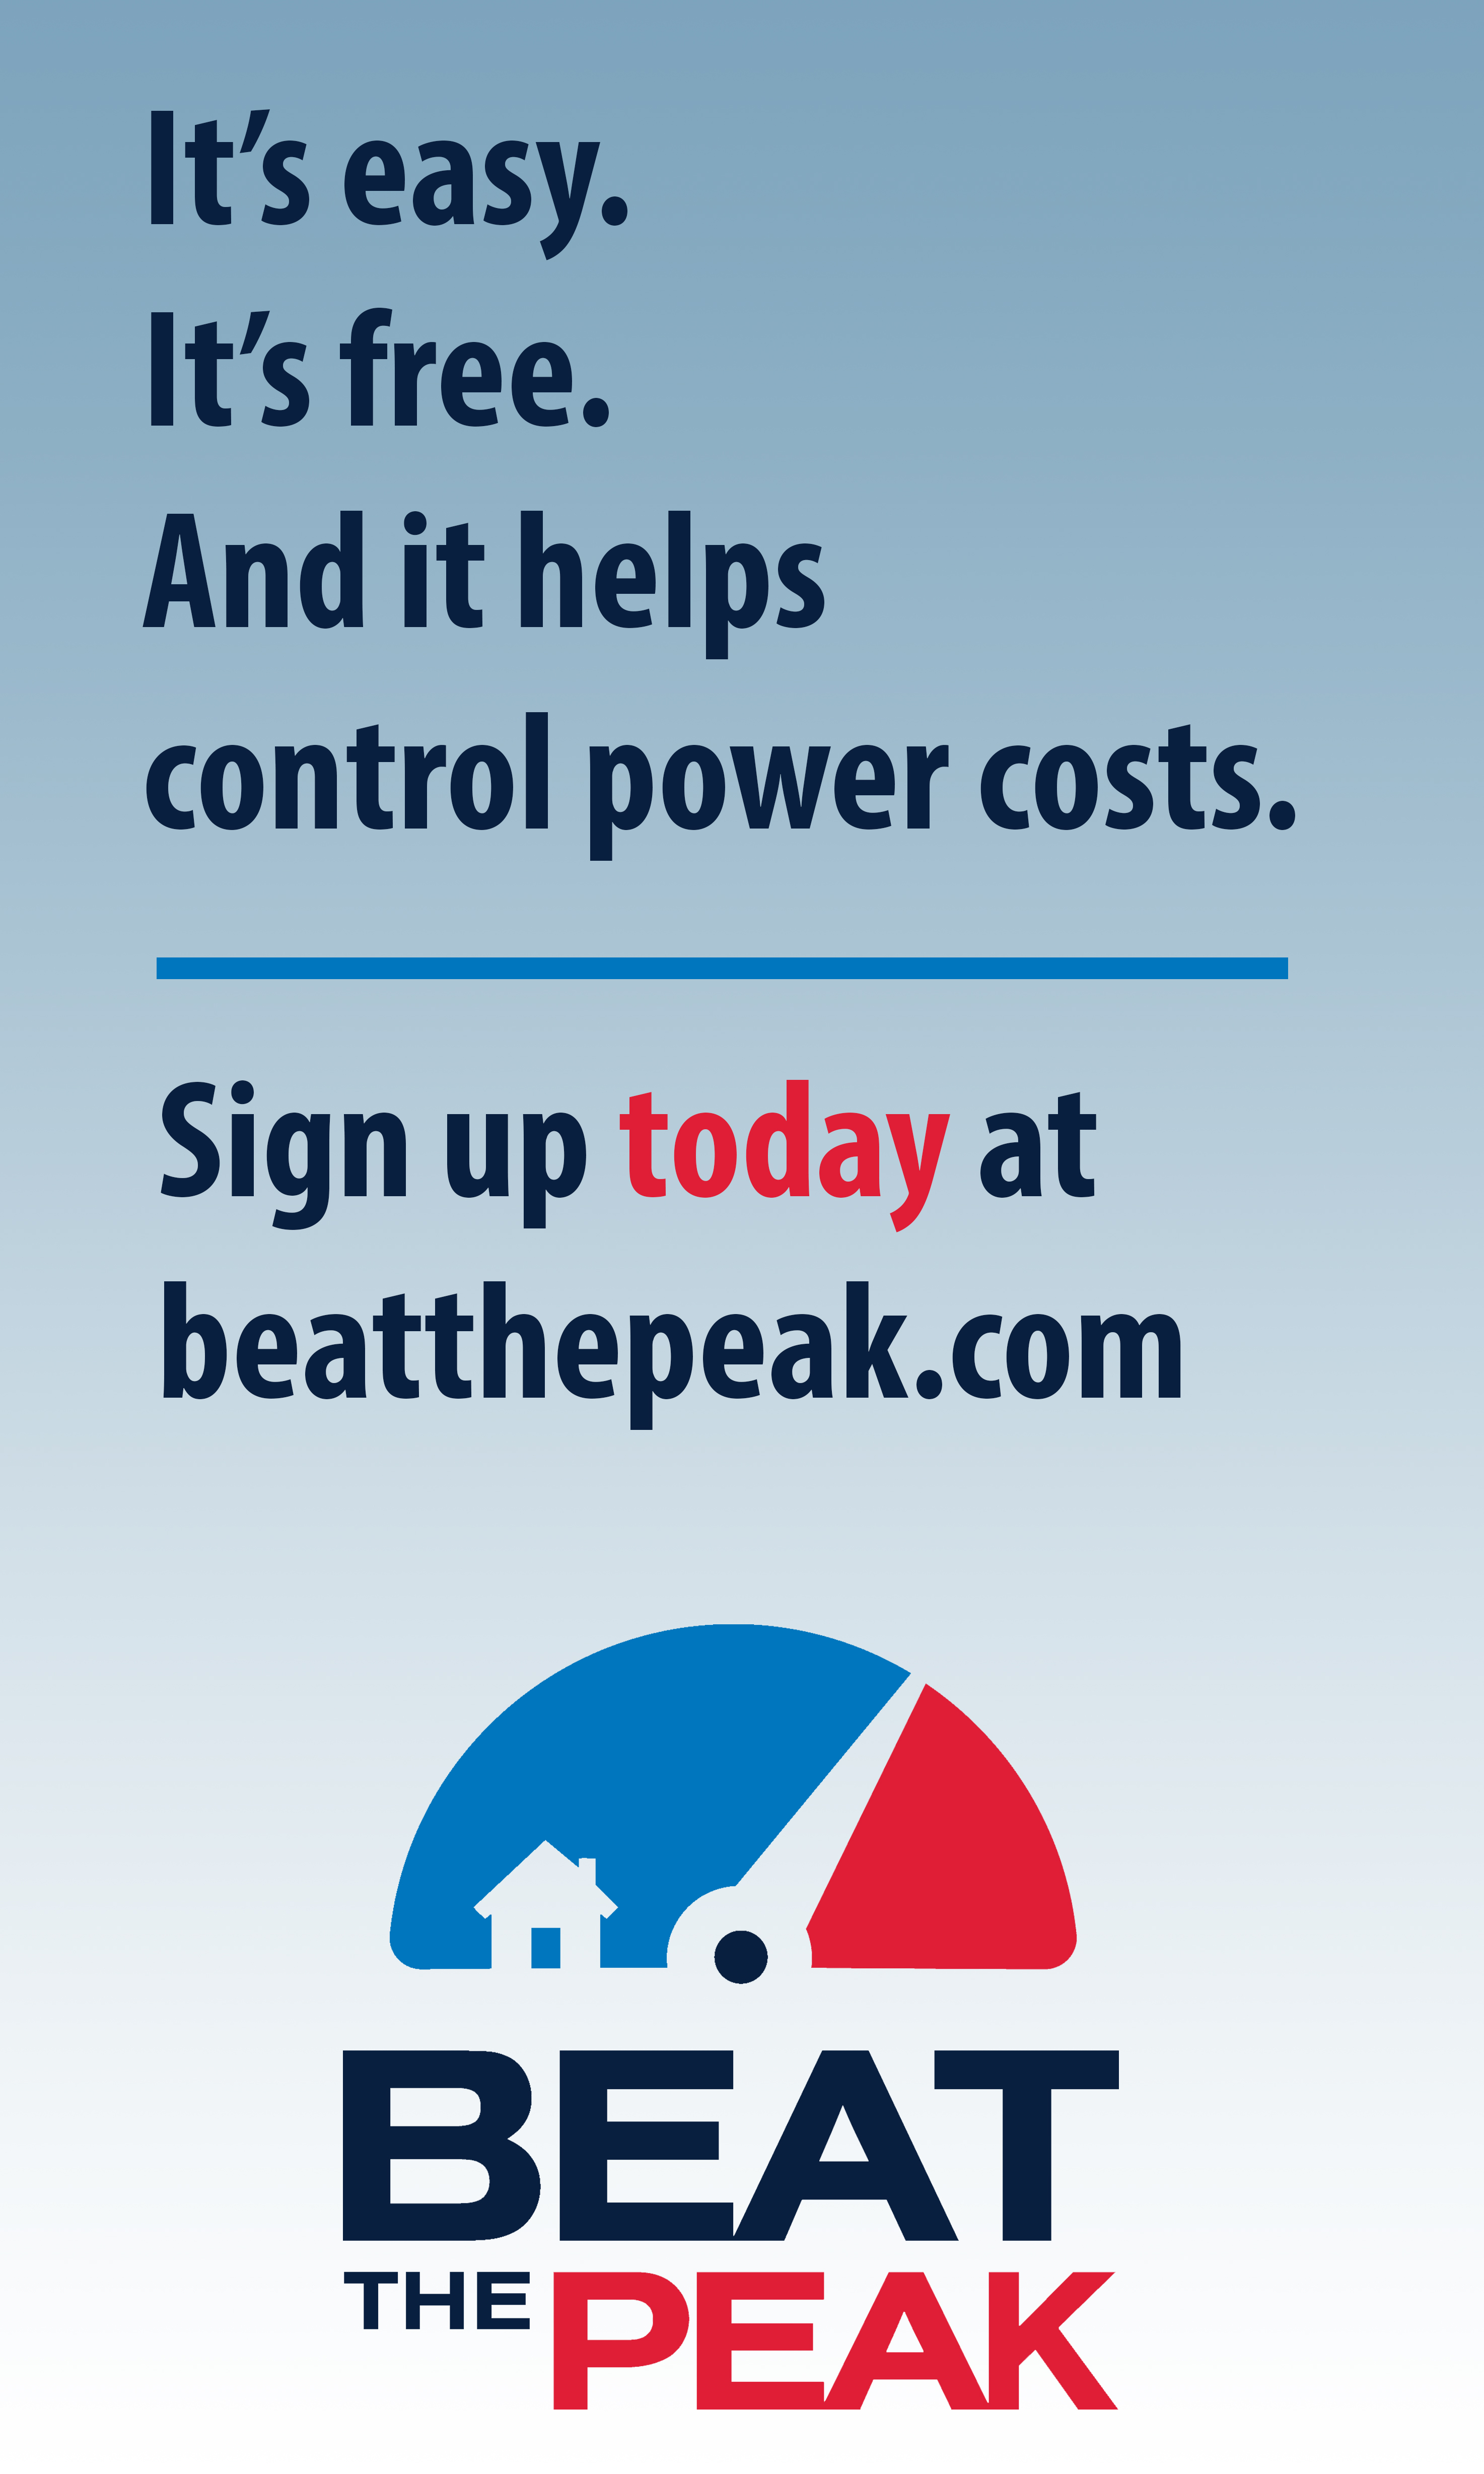 beat the peak program image